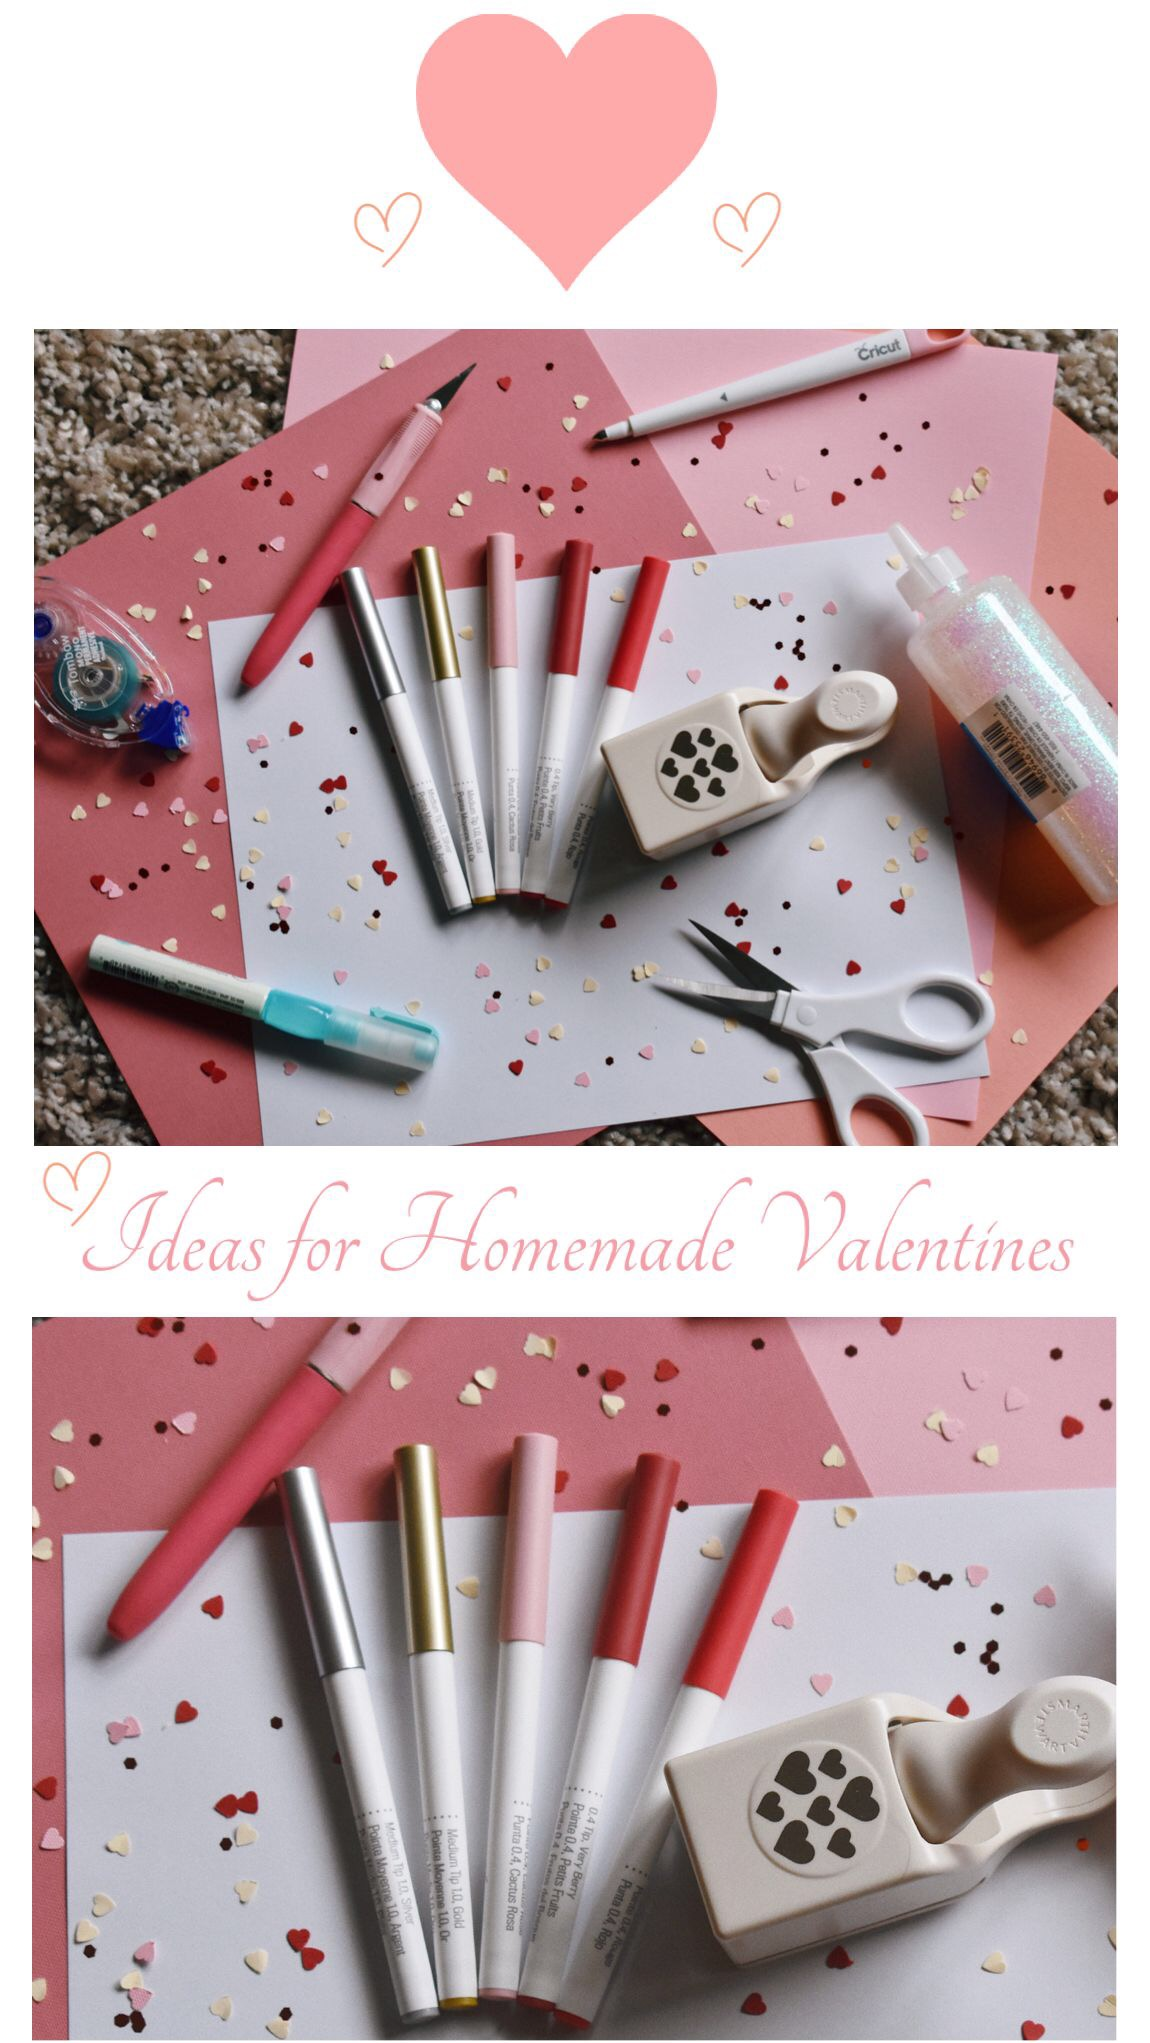 Ideas for Homemade Valentines